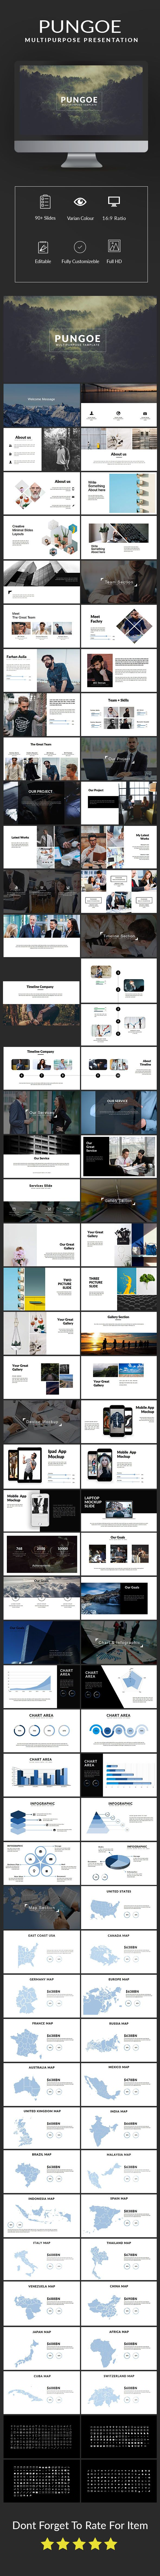 Pungoe Multipurpose PowerPoint Template